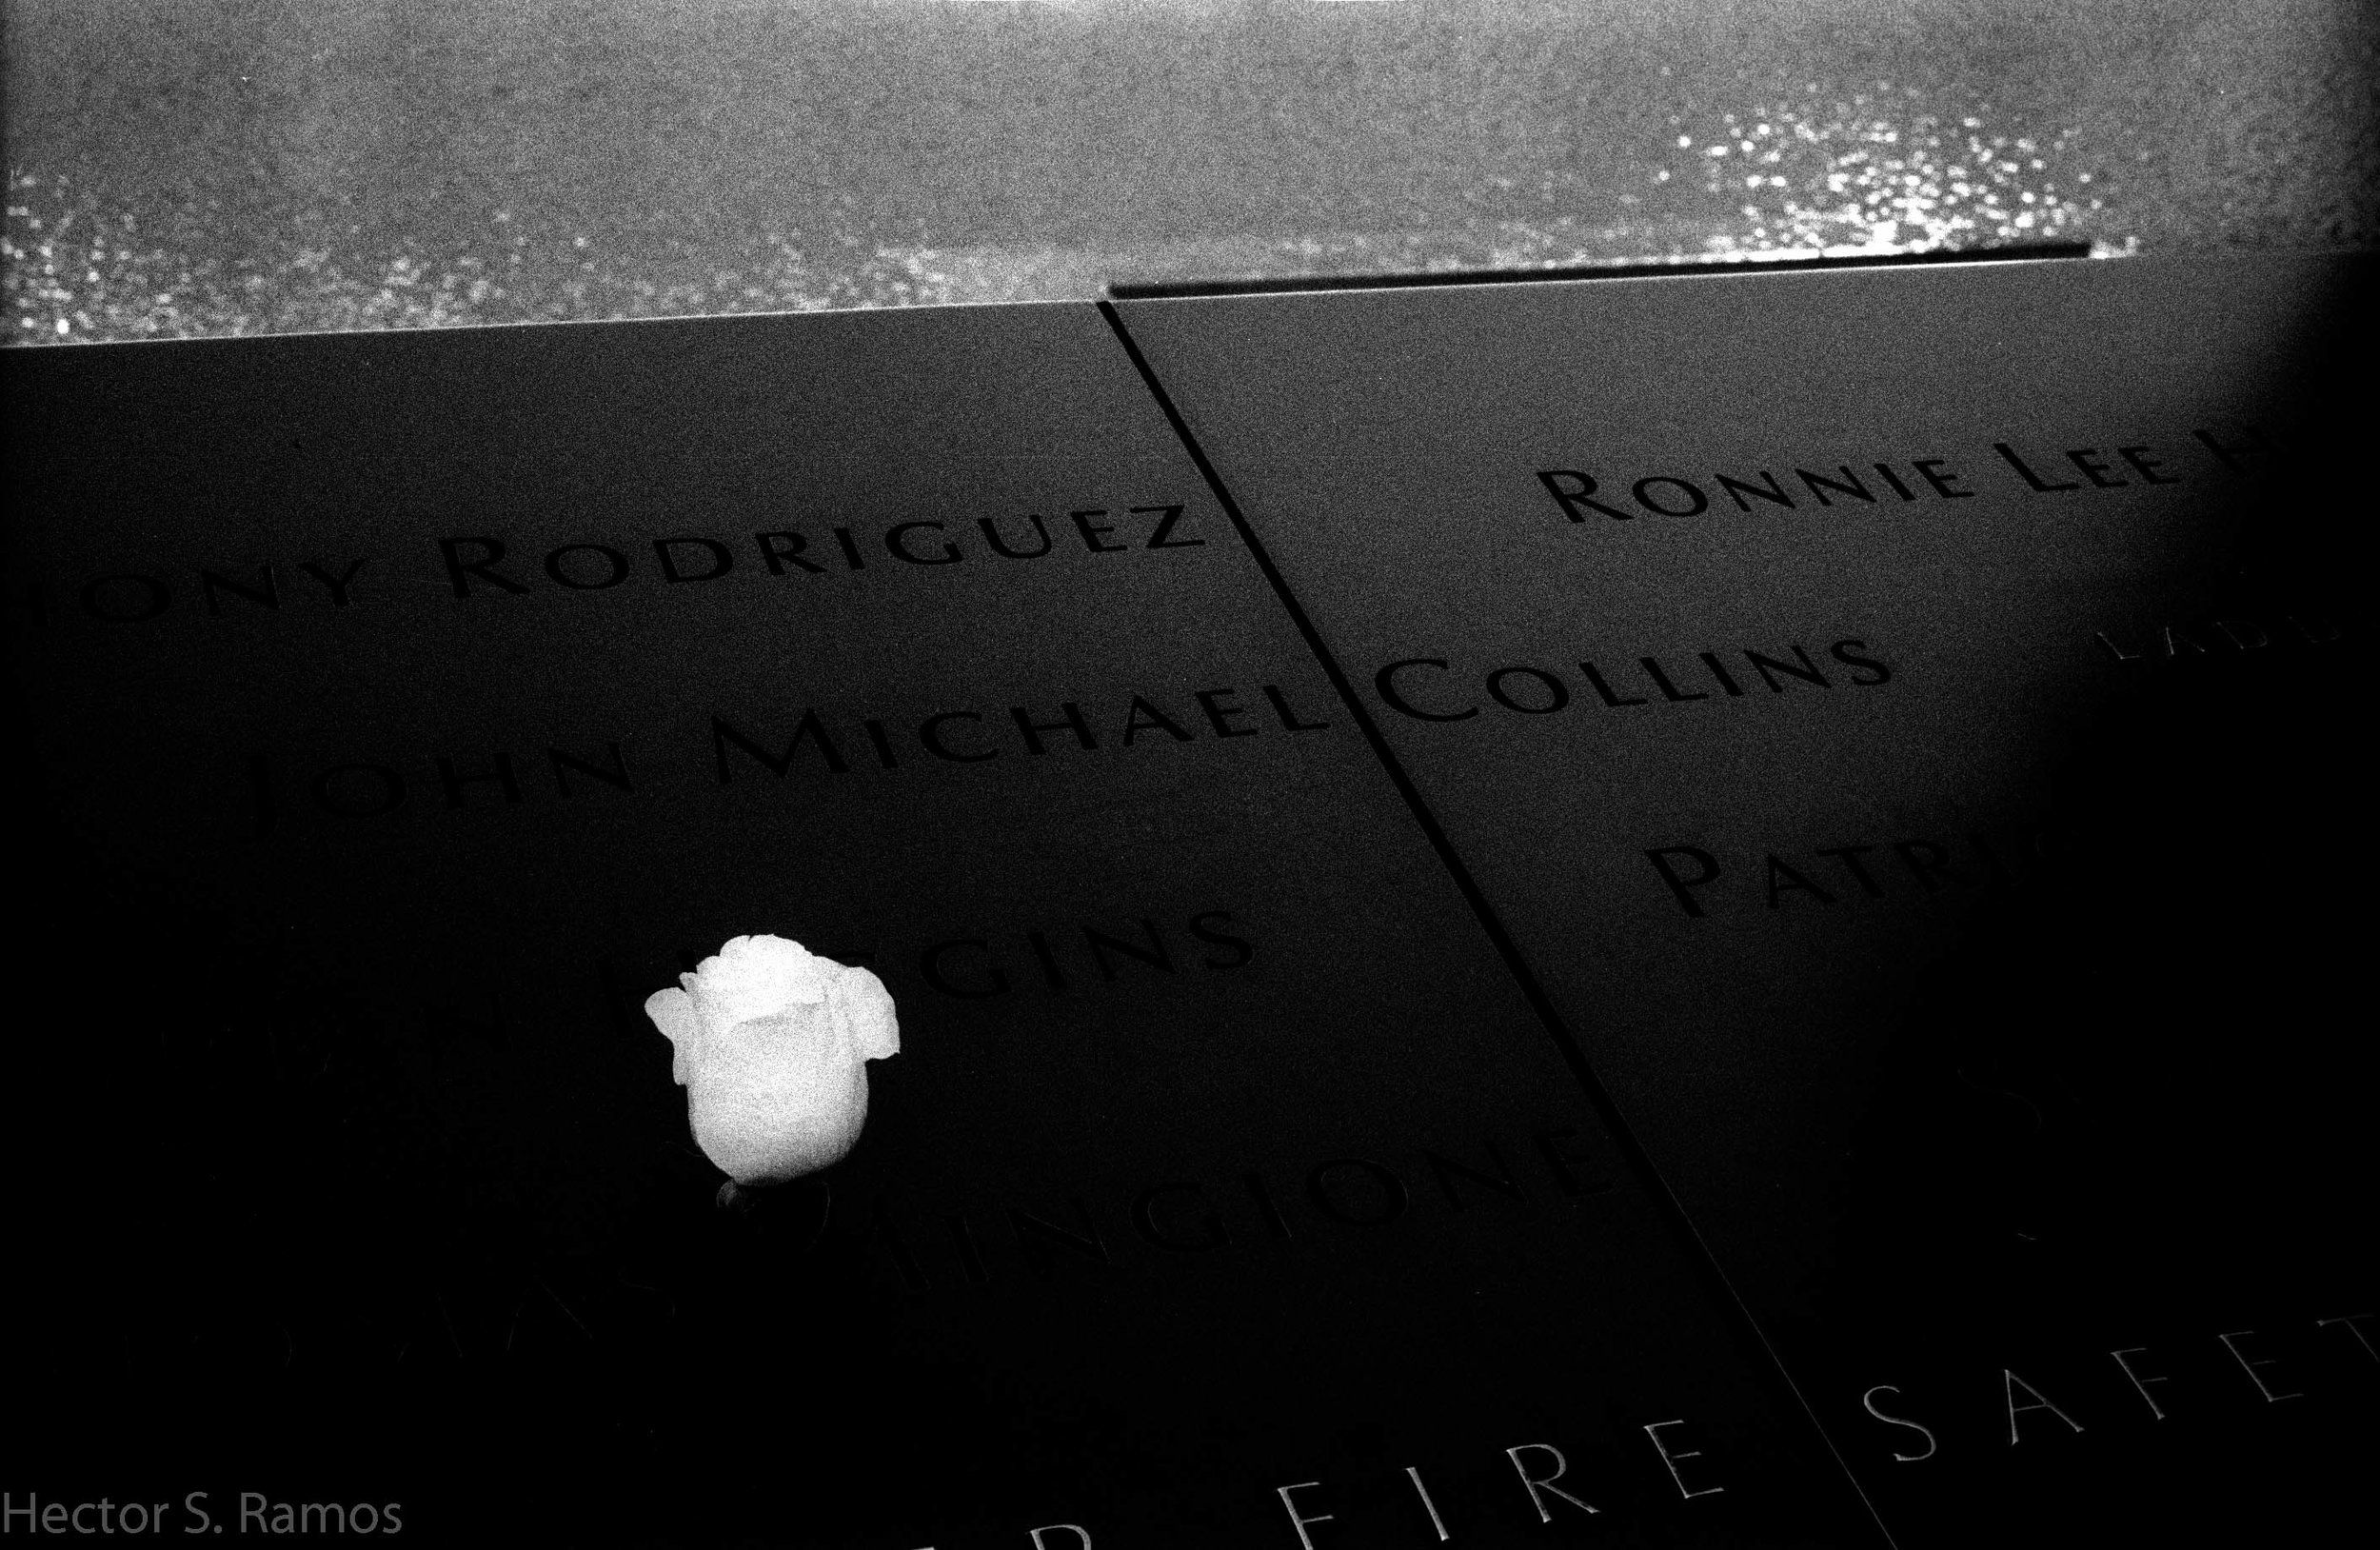 I saw people say prayers, touch the name of loved ones, shed tears and tell stories, and put rose flowers.  September 11 Memorial.